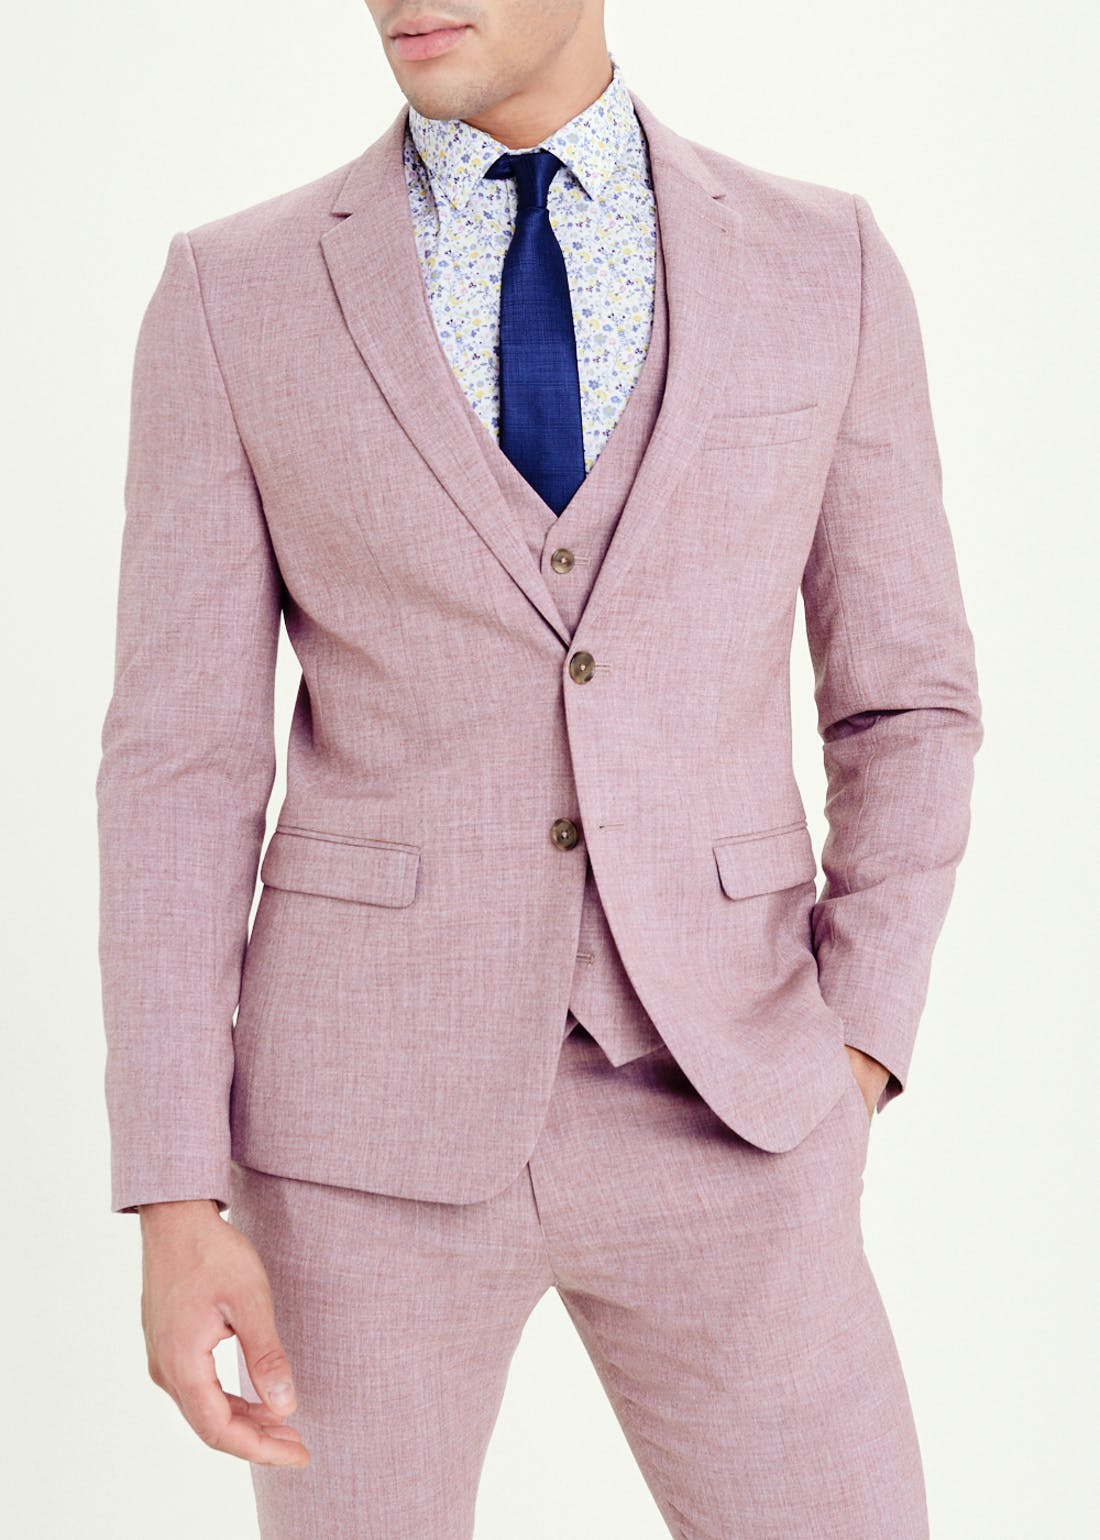 Taylor & Wright Gorman Skinny Fit Suit Jacket